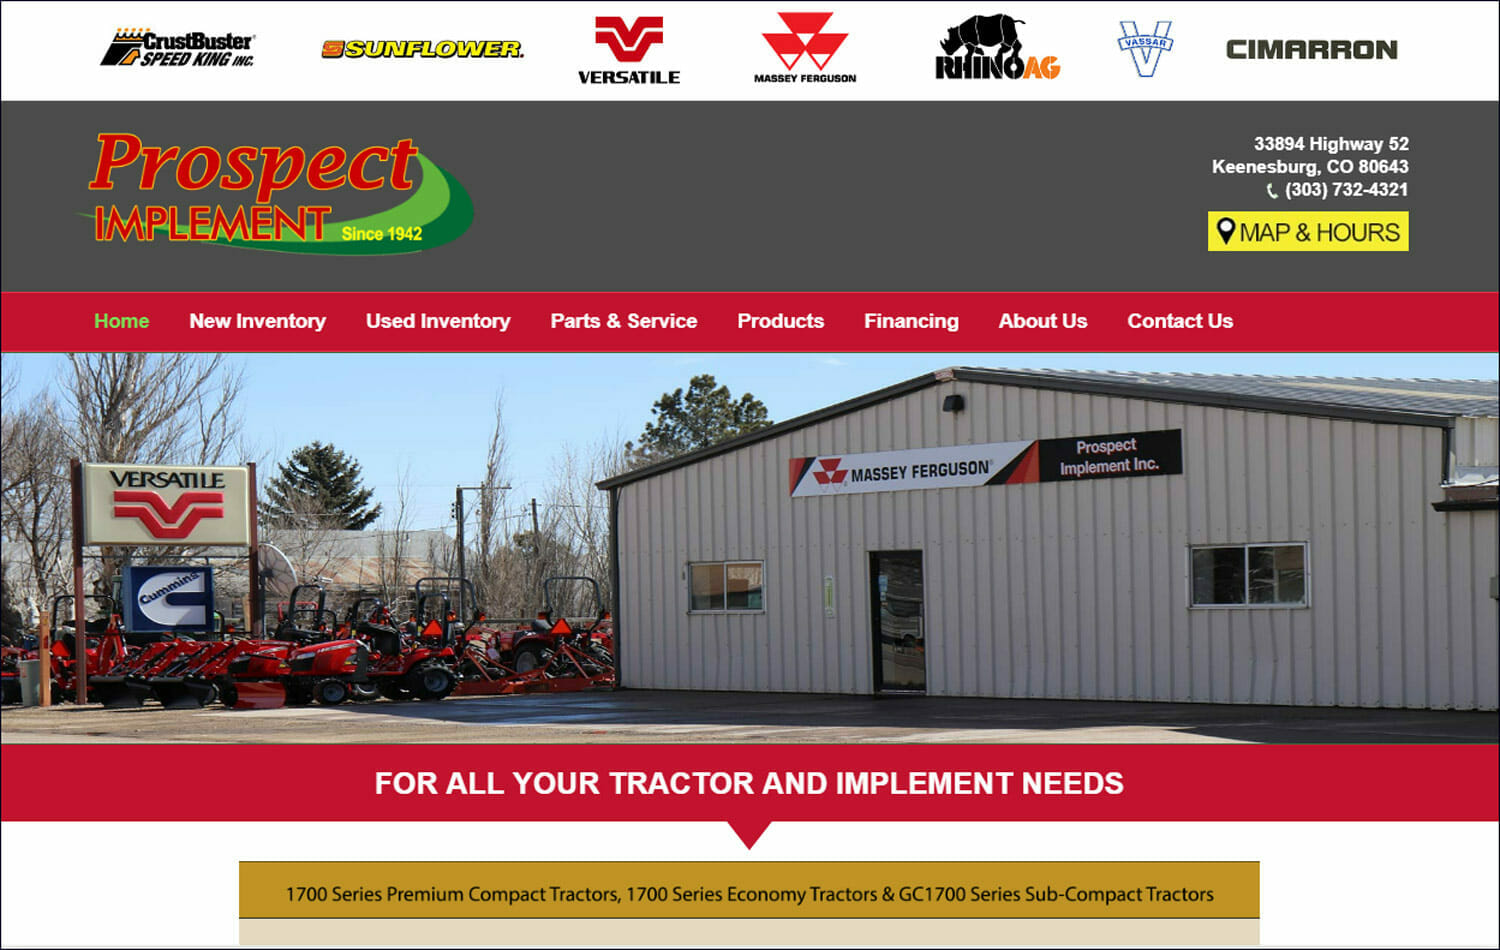 prospect implement home page